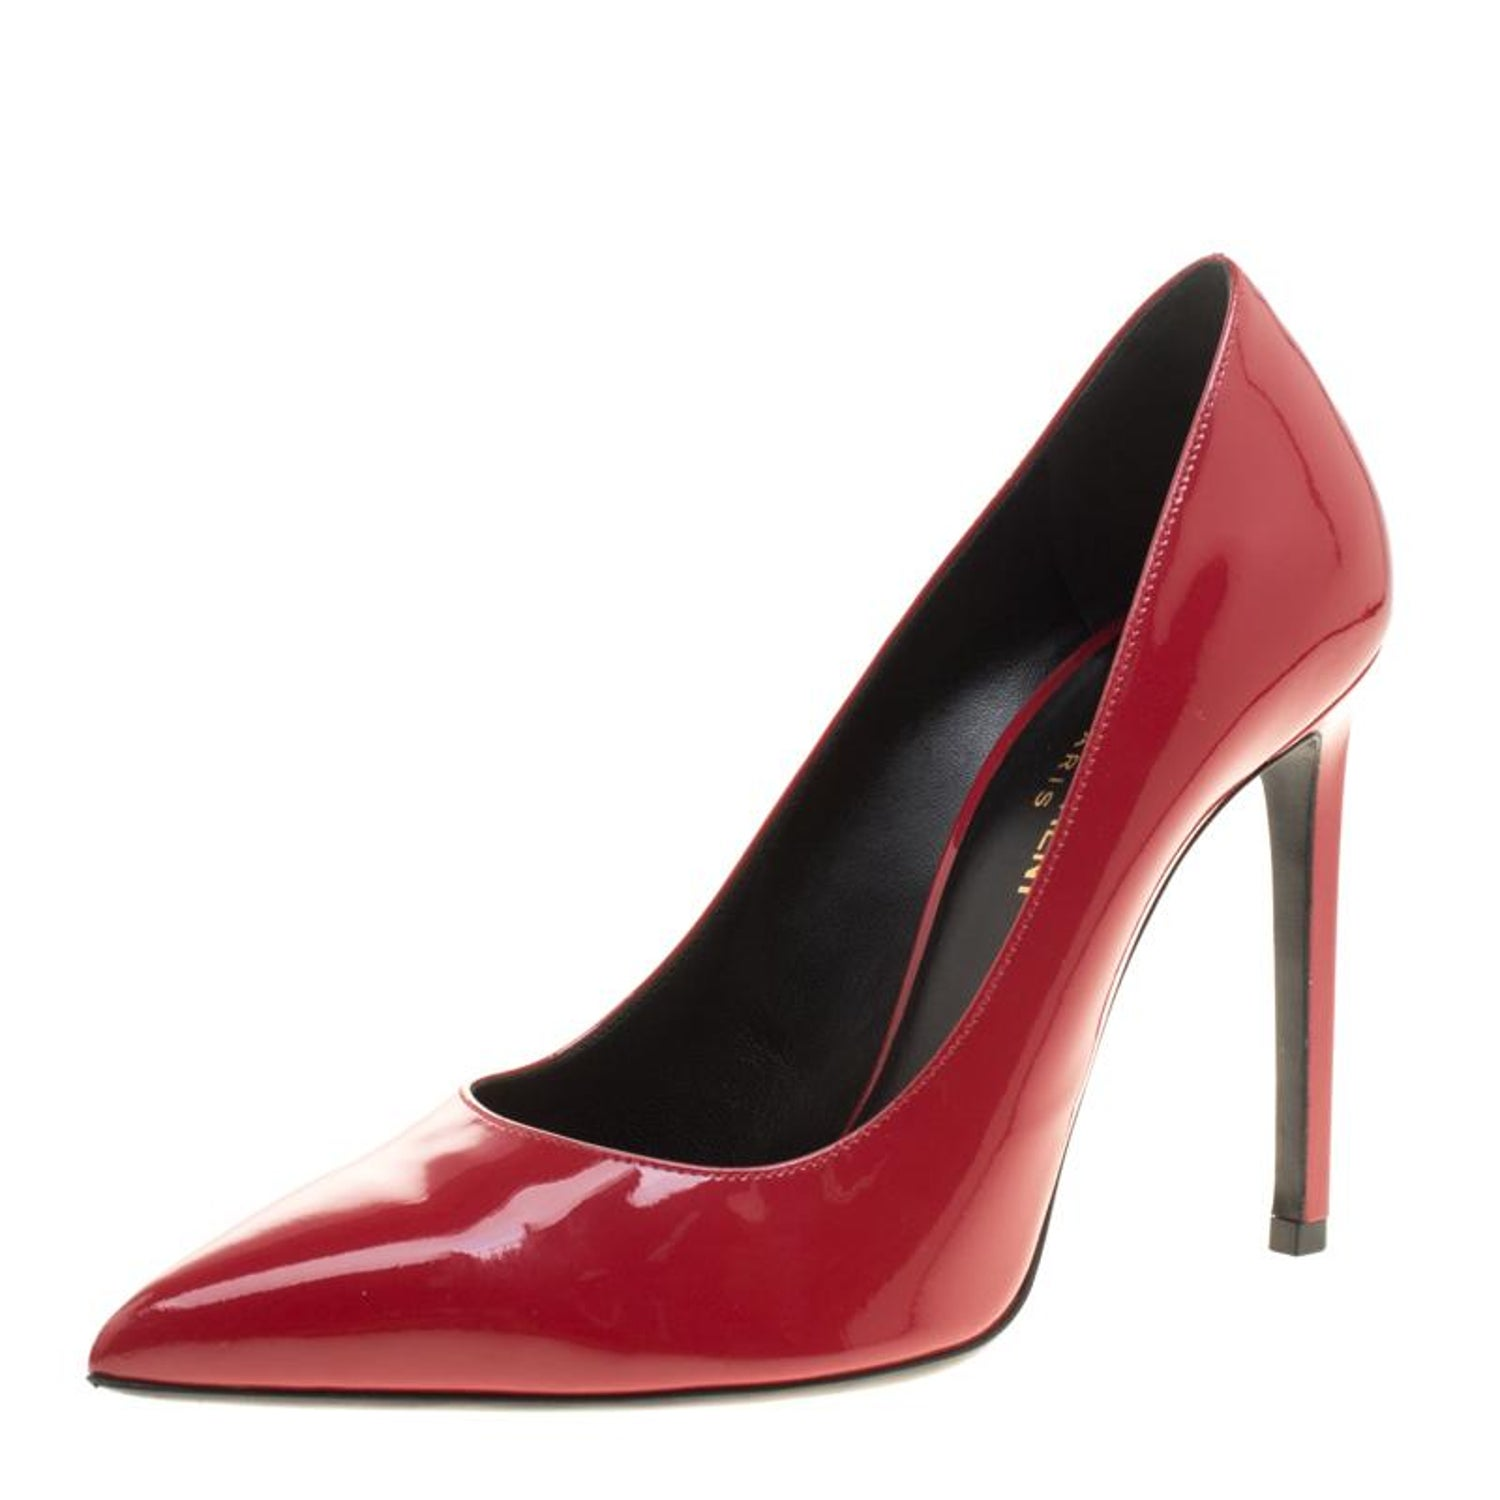 677b35ef3a0 Saint Laurent Paris Red Patent Leather Paris Skinny Pointed Toe Pumps Size  39 For Sale at 1stdibs